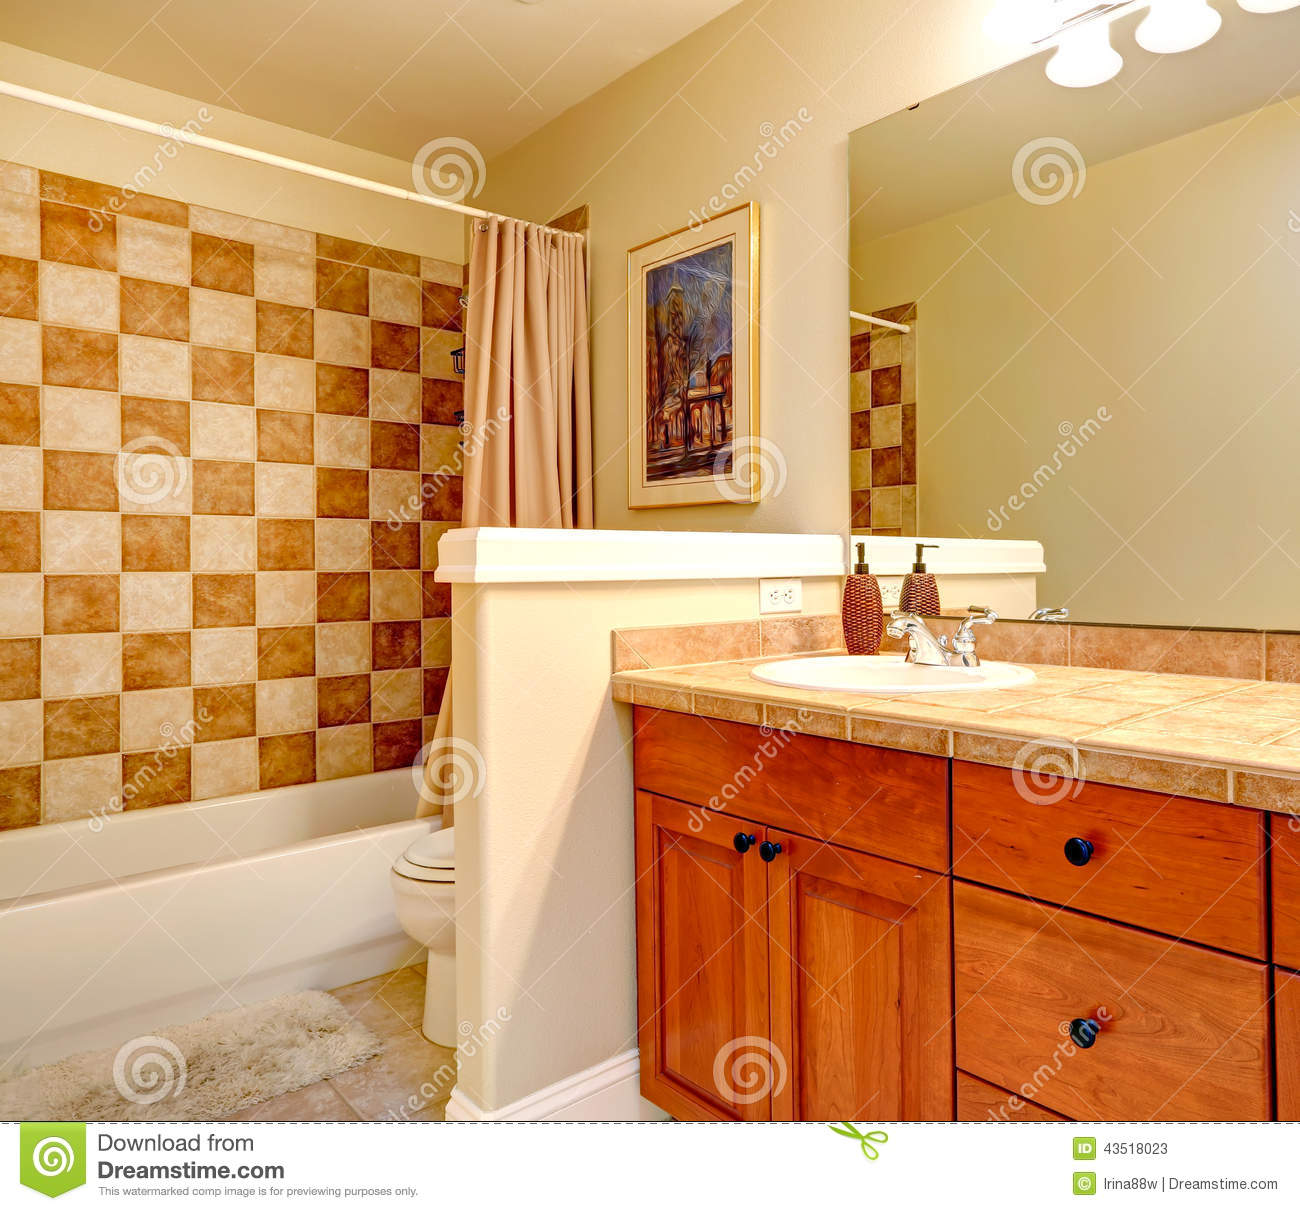 Finished Basement Bathroom Pictures: Bathroom With Checker Board Style Wall Trim Stock Photo